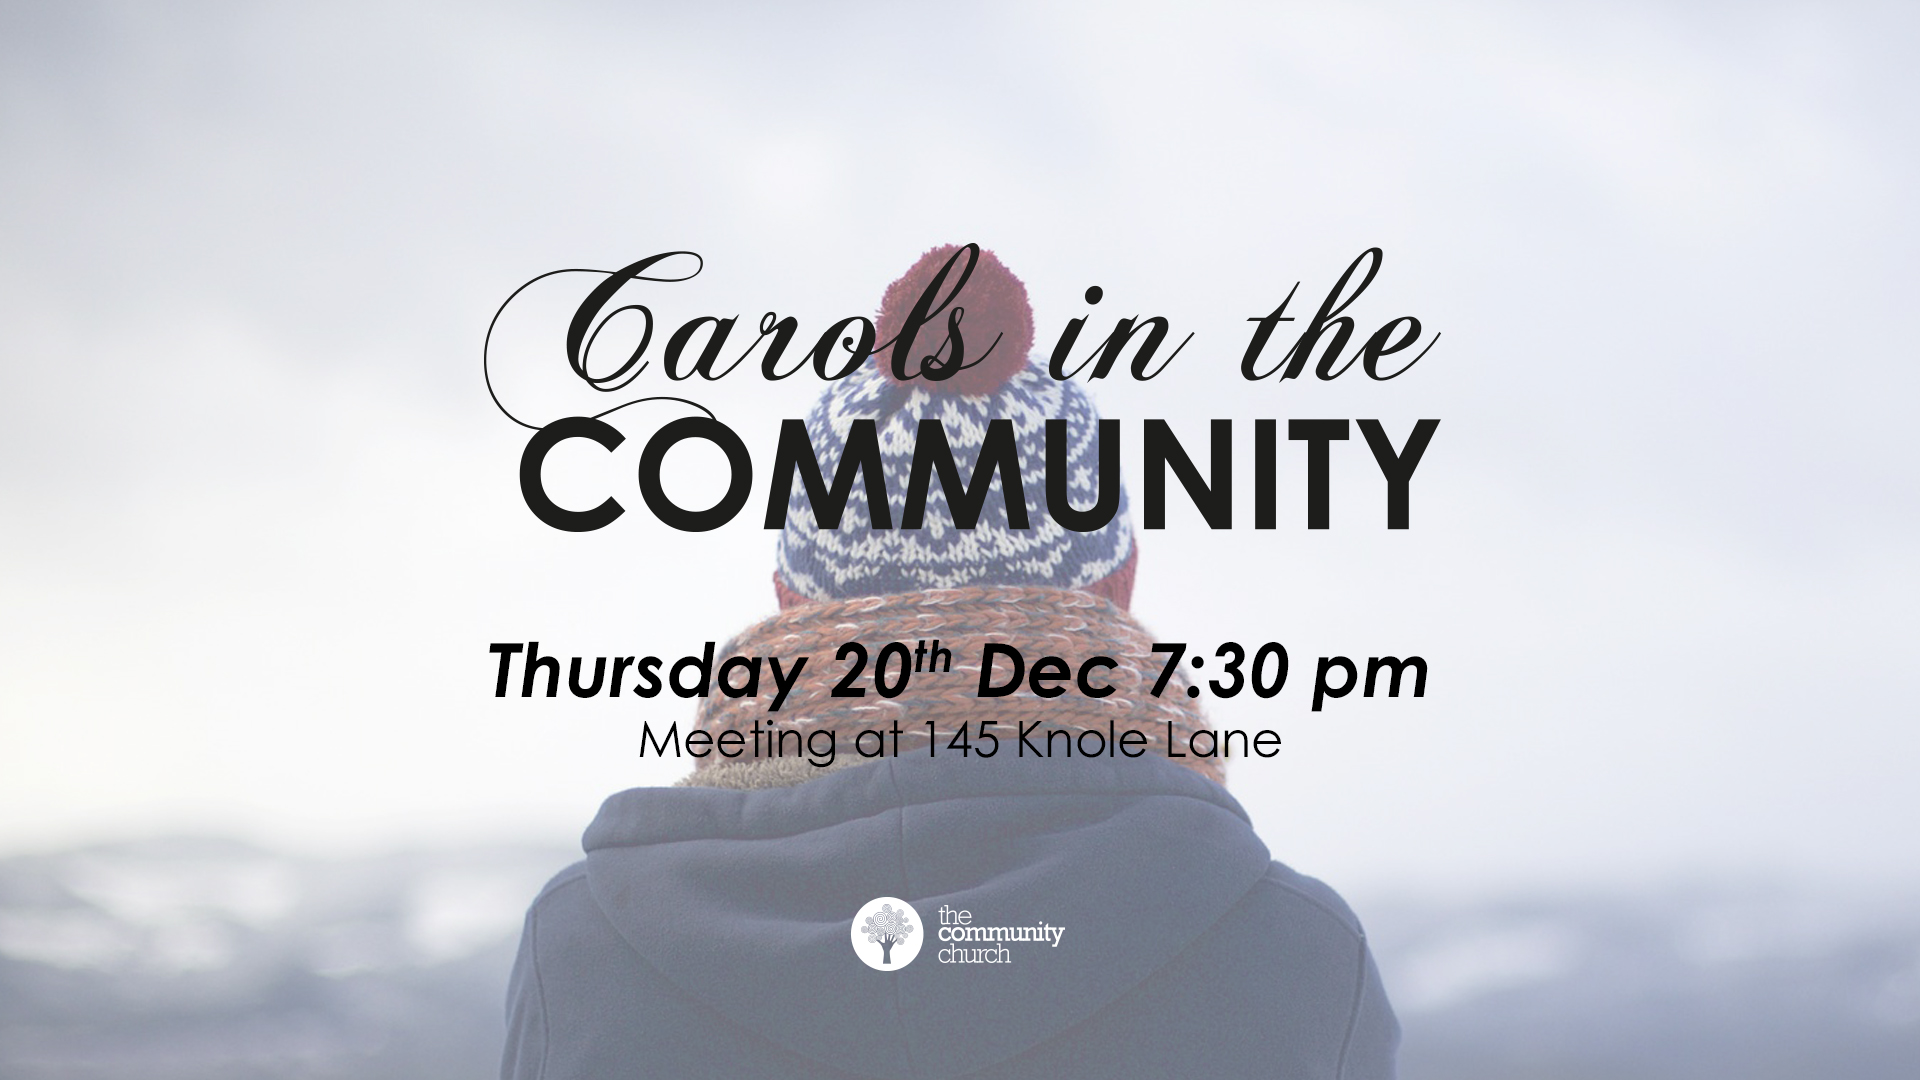 We'll be heading into Brentry community for carols and sharing the joys of the season!